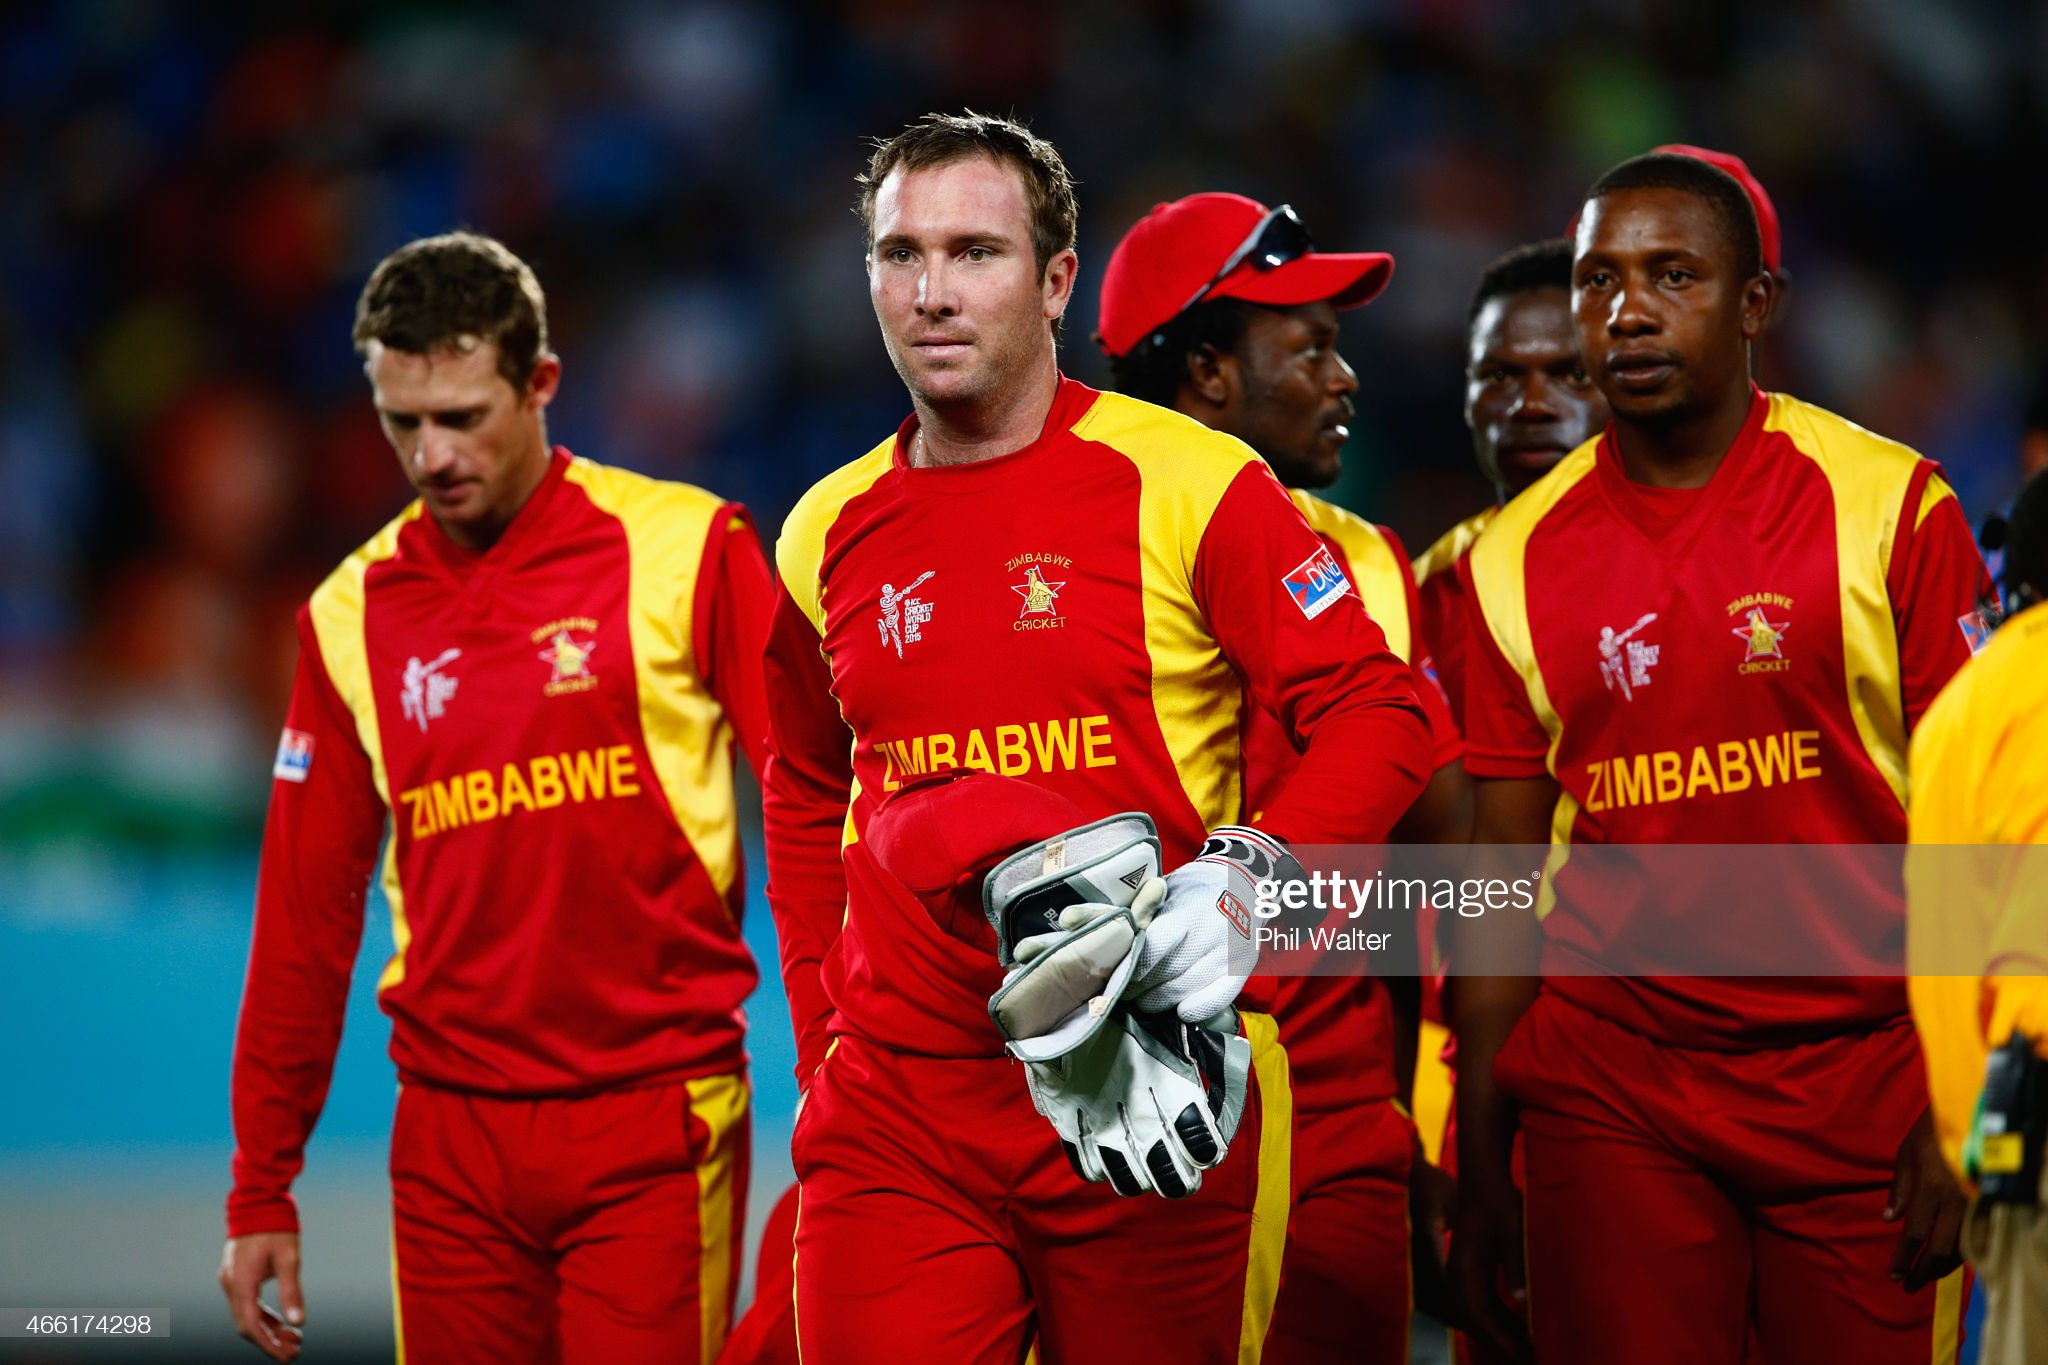 India v Zimbabwe - 2015 ICC Cricket World Cup : News Photo